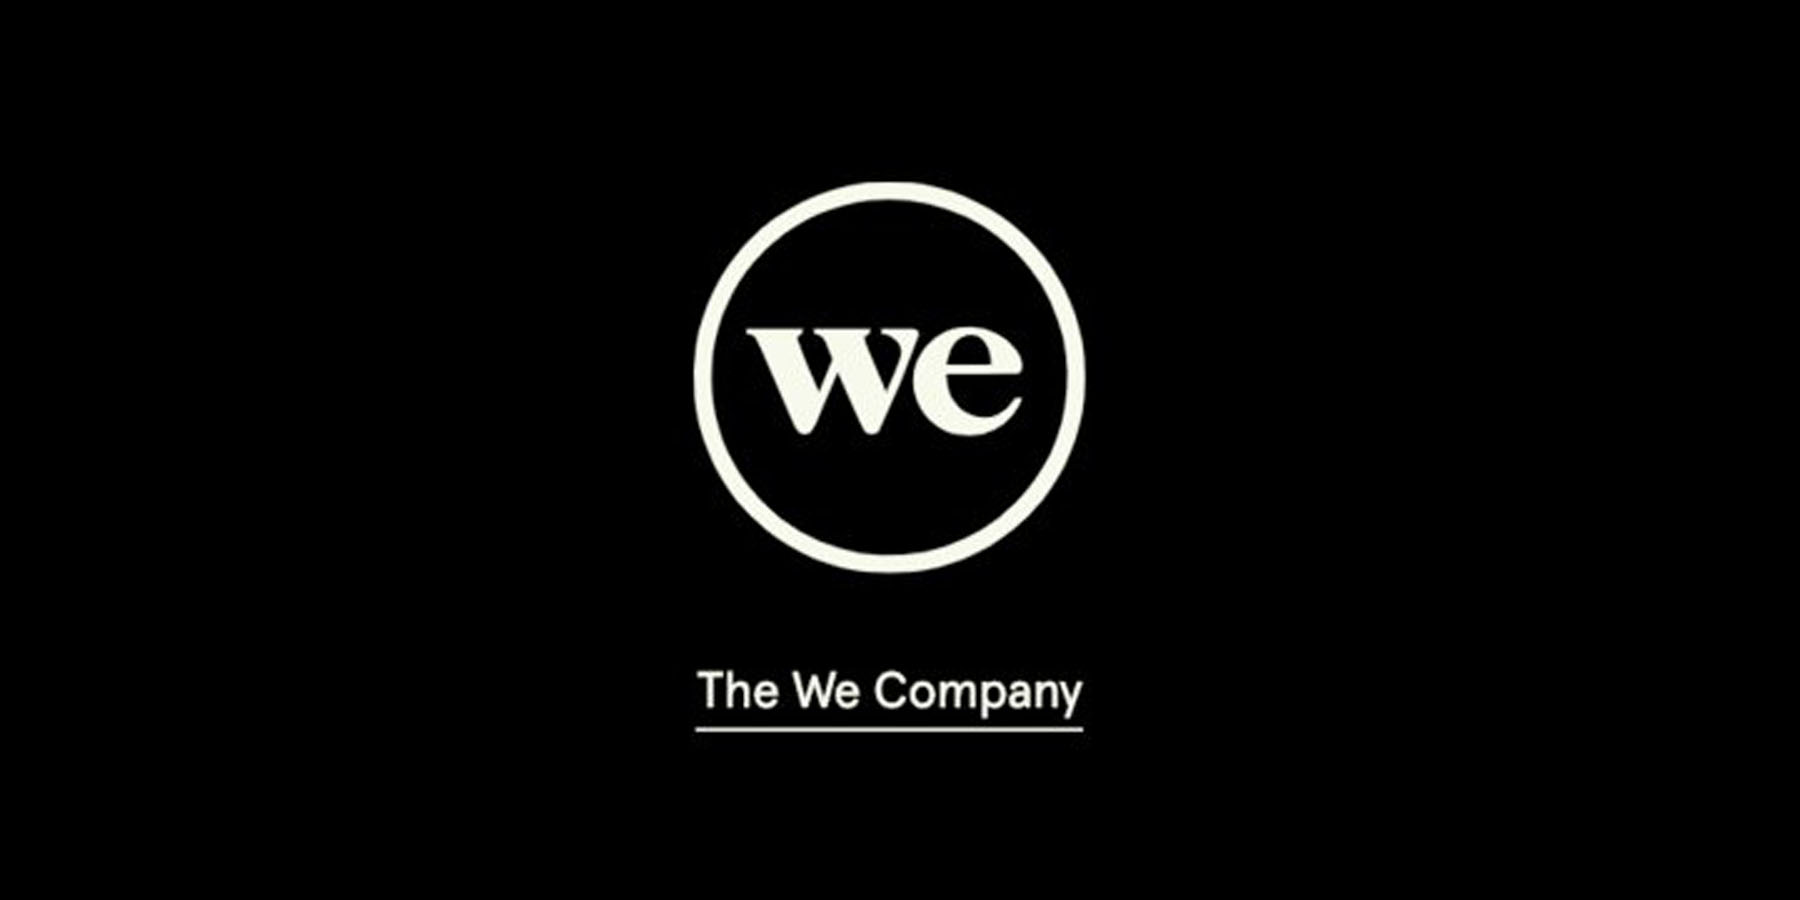 NEWS: The We Company Introduces New Venture